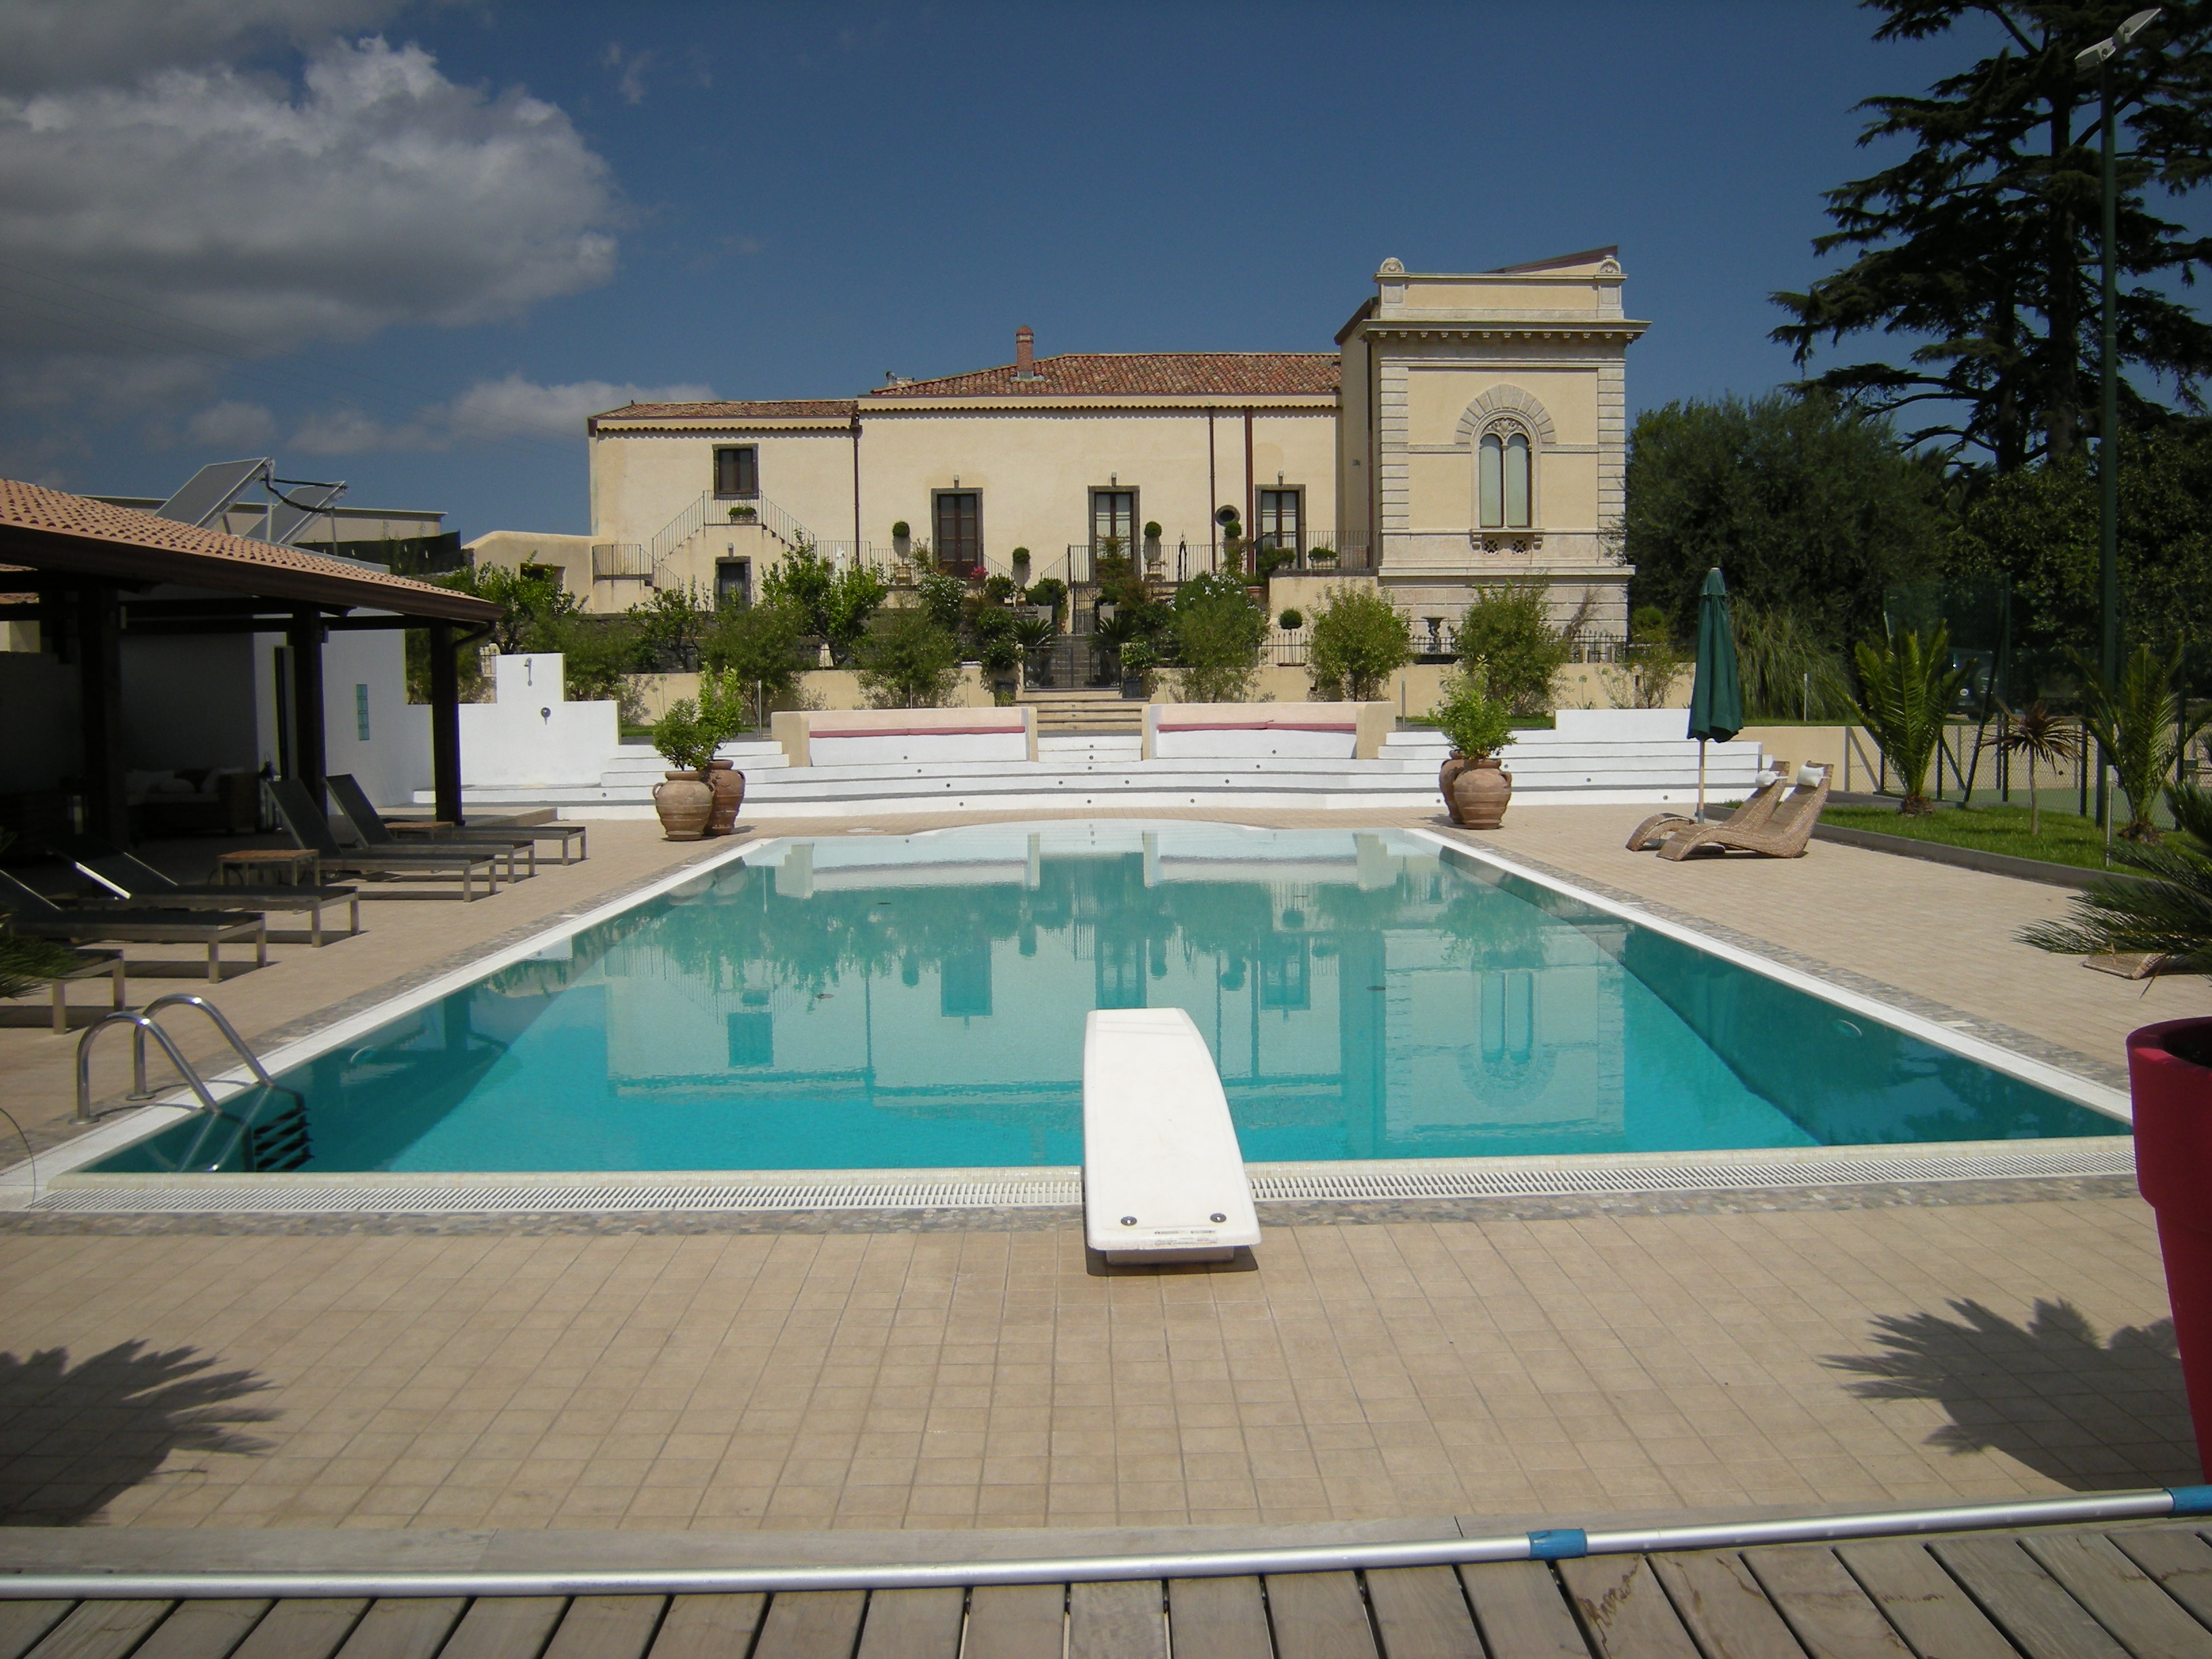 Wonderful Villa in Sicily at the foot of mount Etna in need of complete refurbishment and new pool.